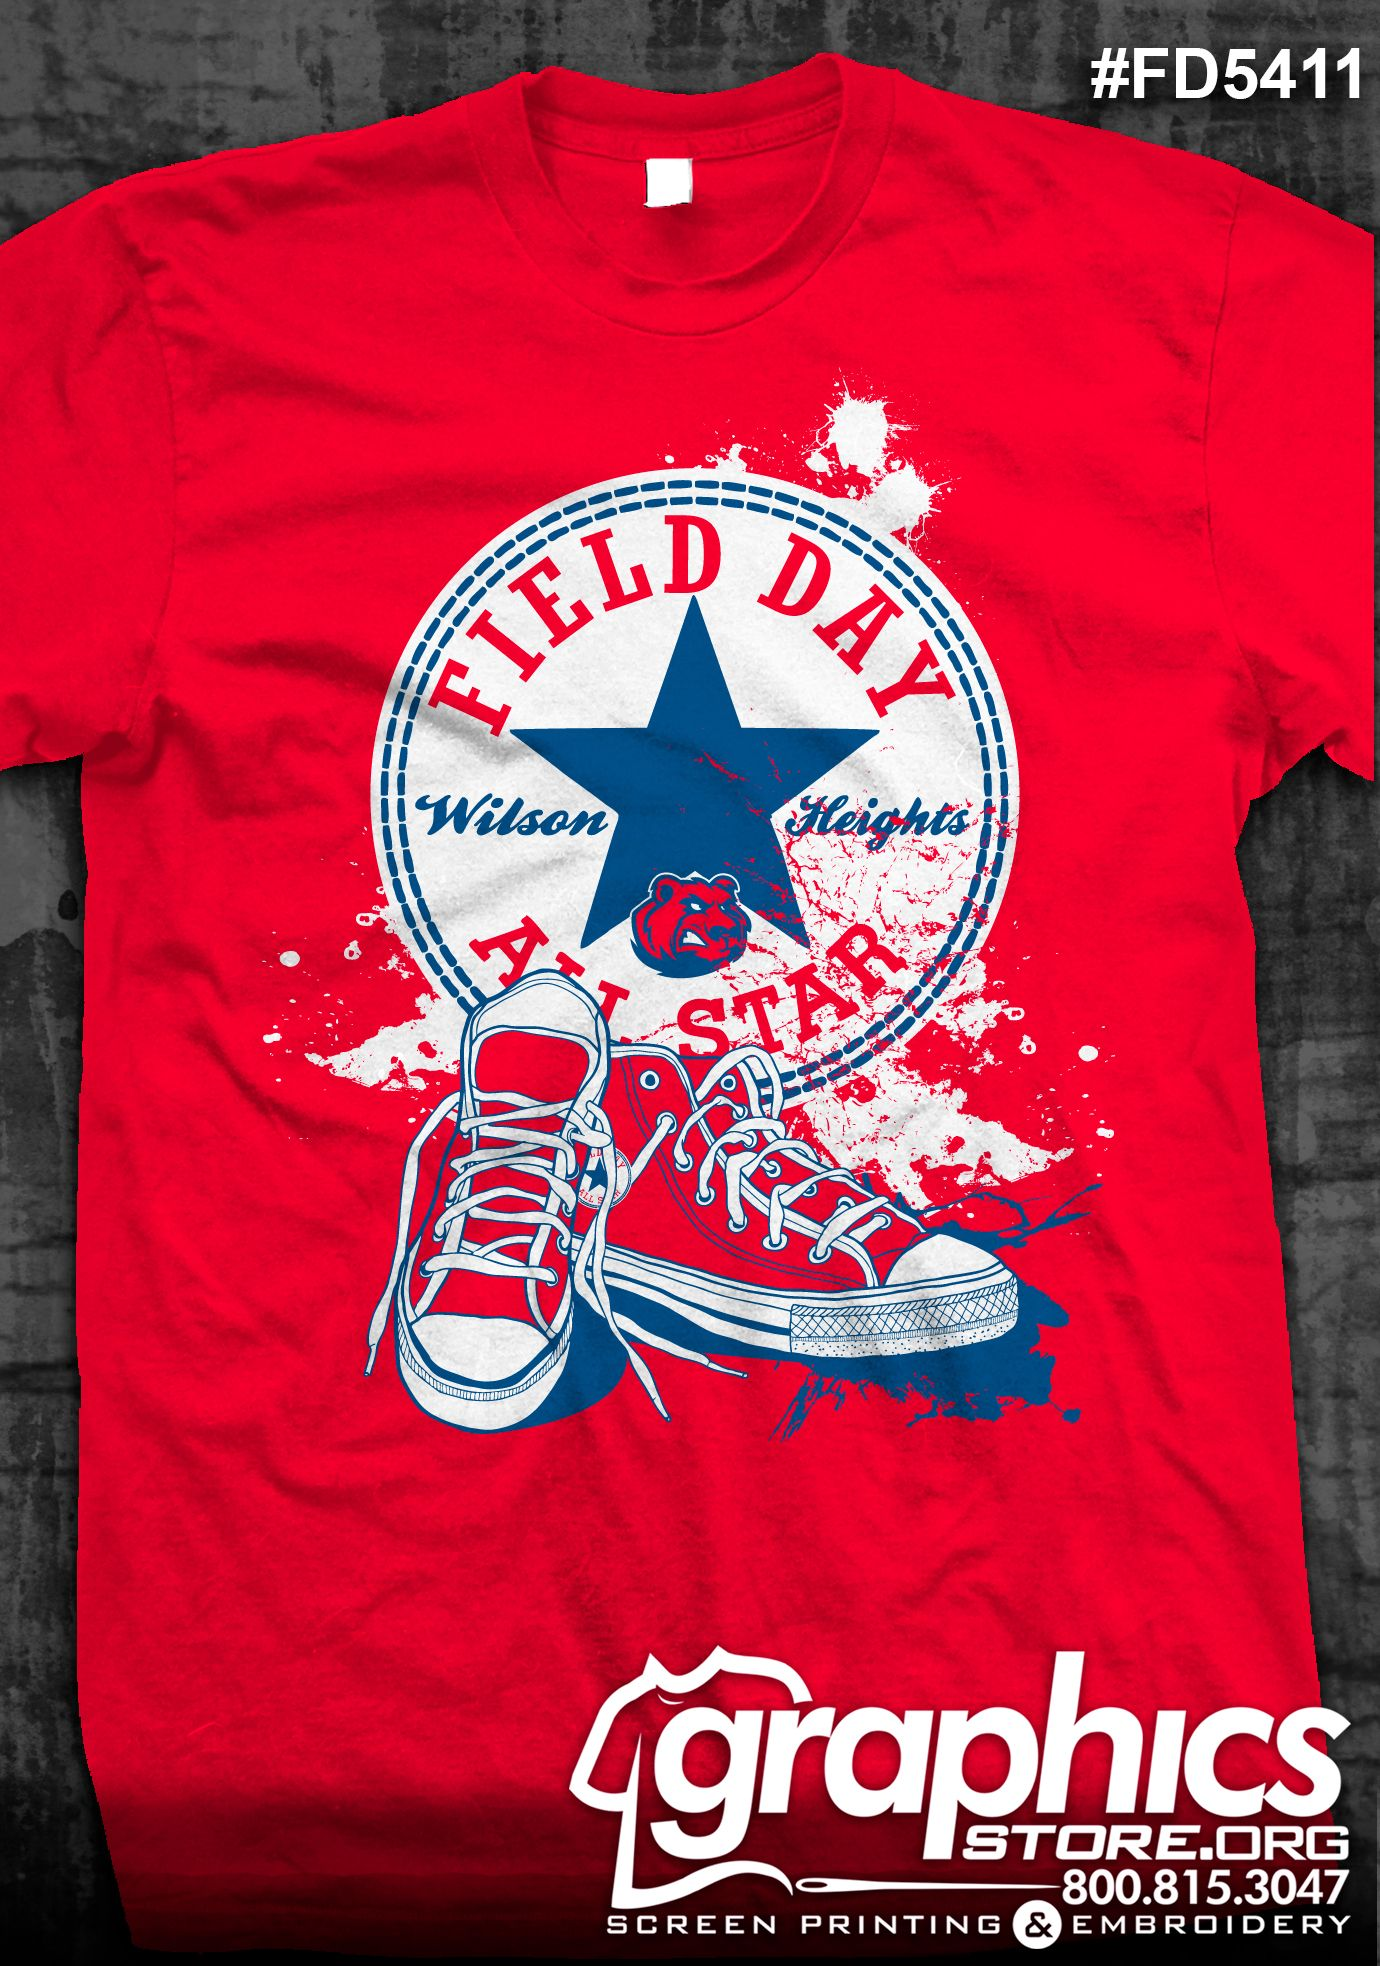 Template Tuesday...Show off your Field Day All Stars. Need